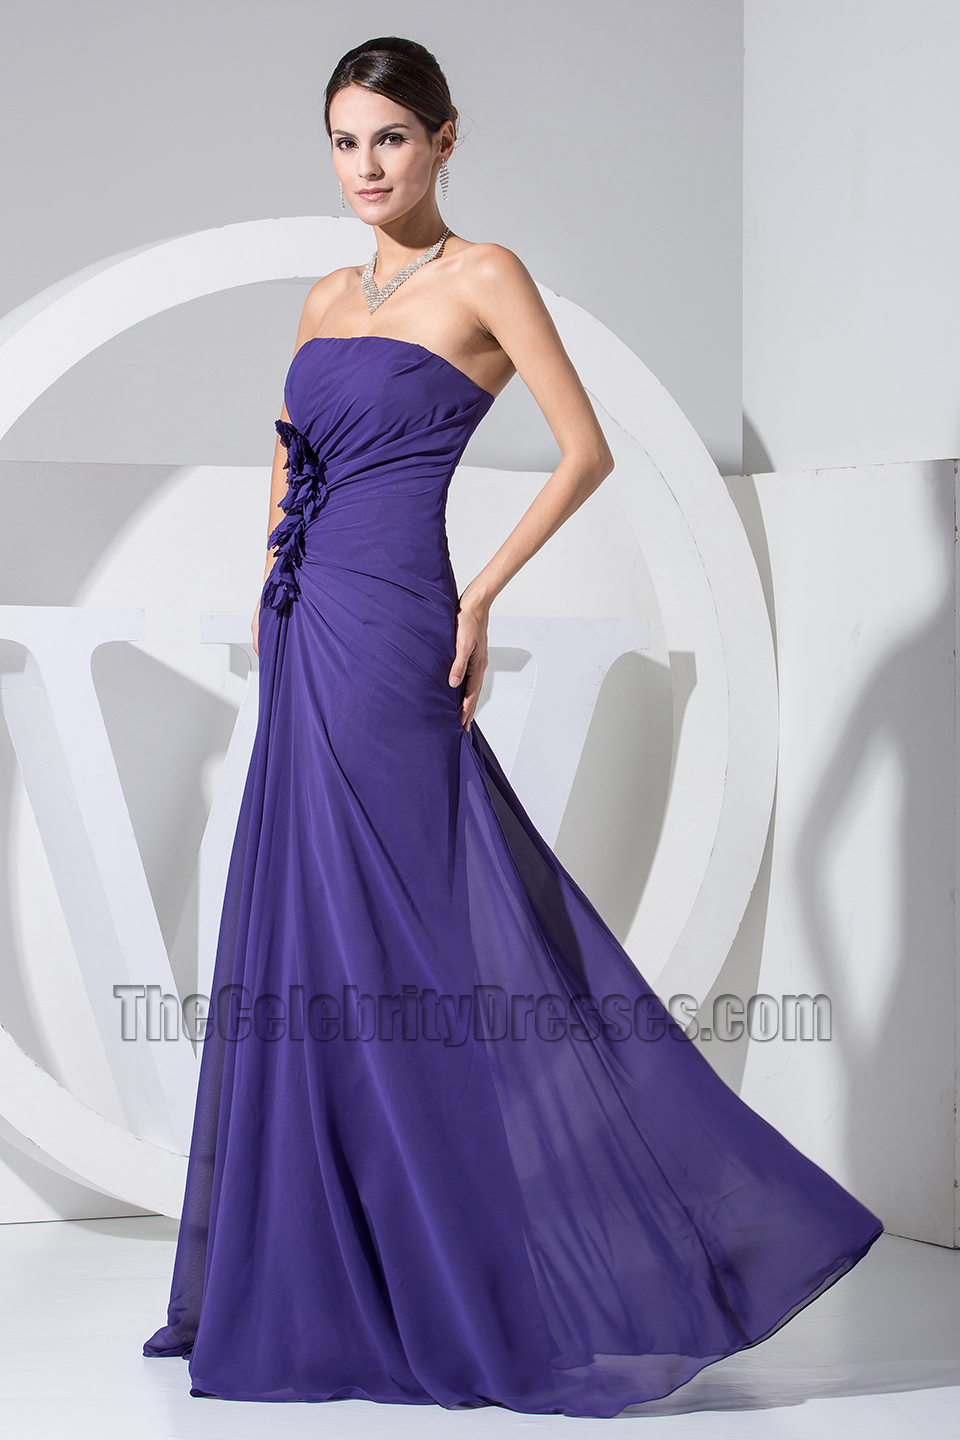 bbac25db509c Simple Strapless A-Line Chiffon Prom Gown Evening Formal Dress -  TheCelebrityDresses